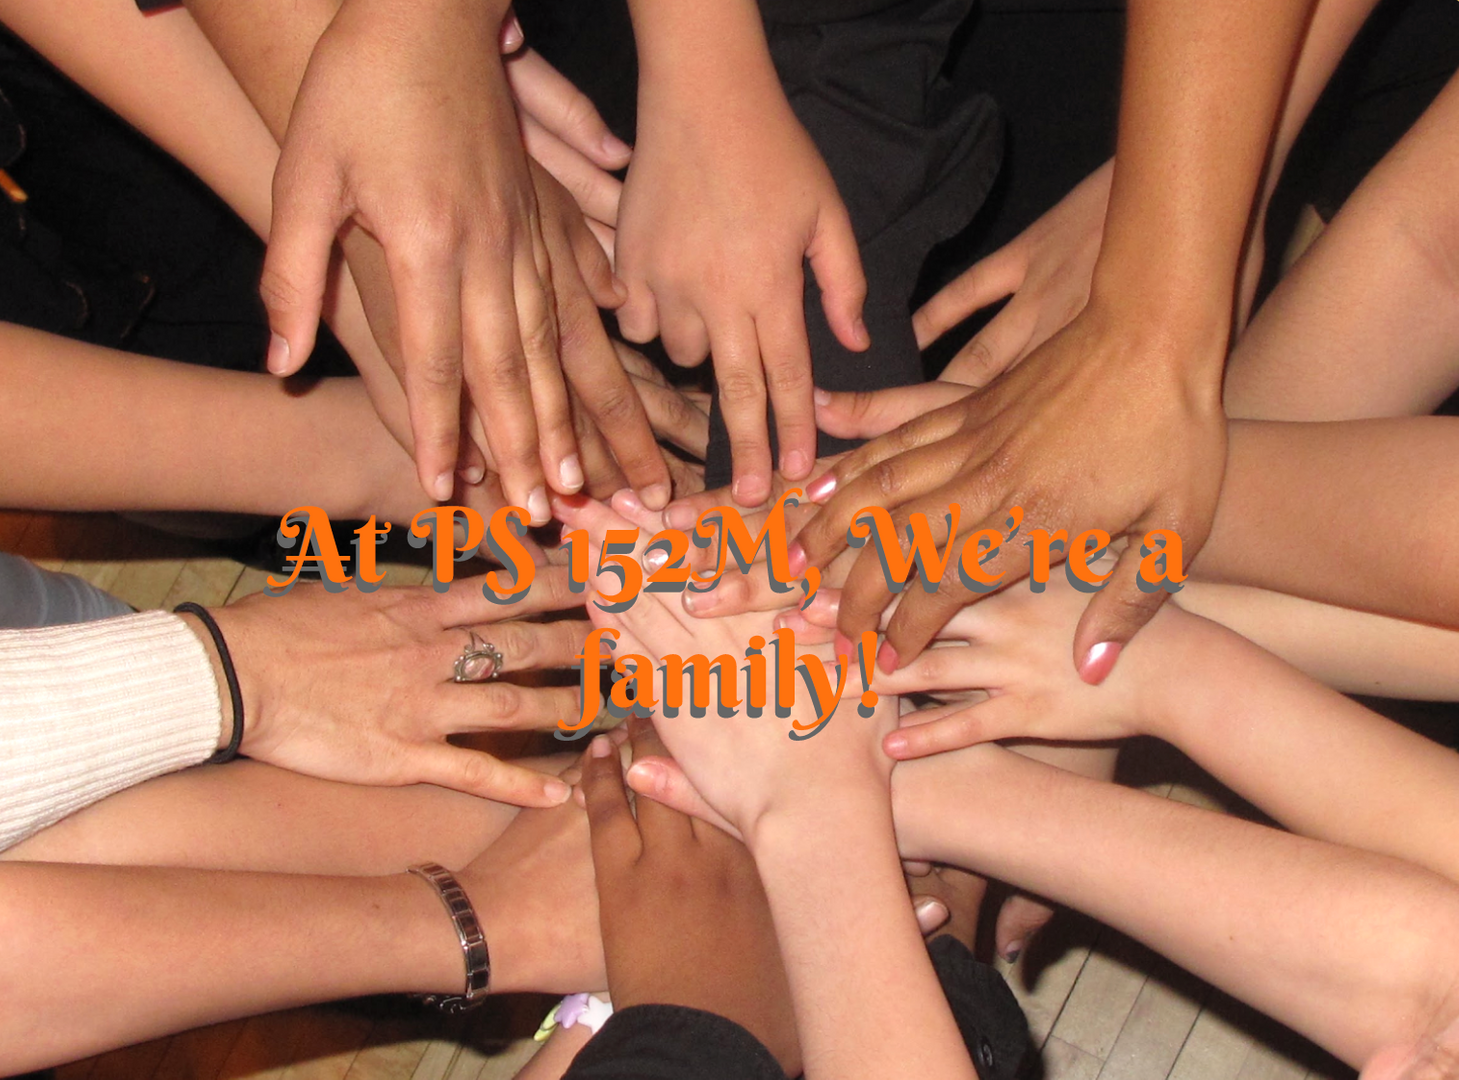 At P.S. 152M we're a family!